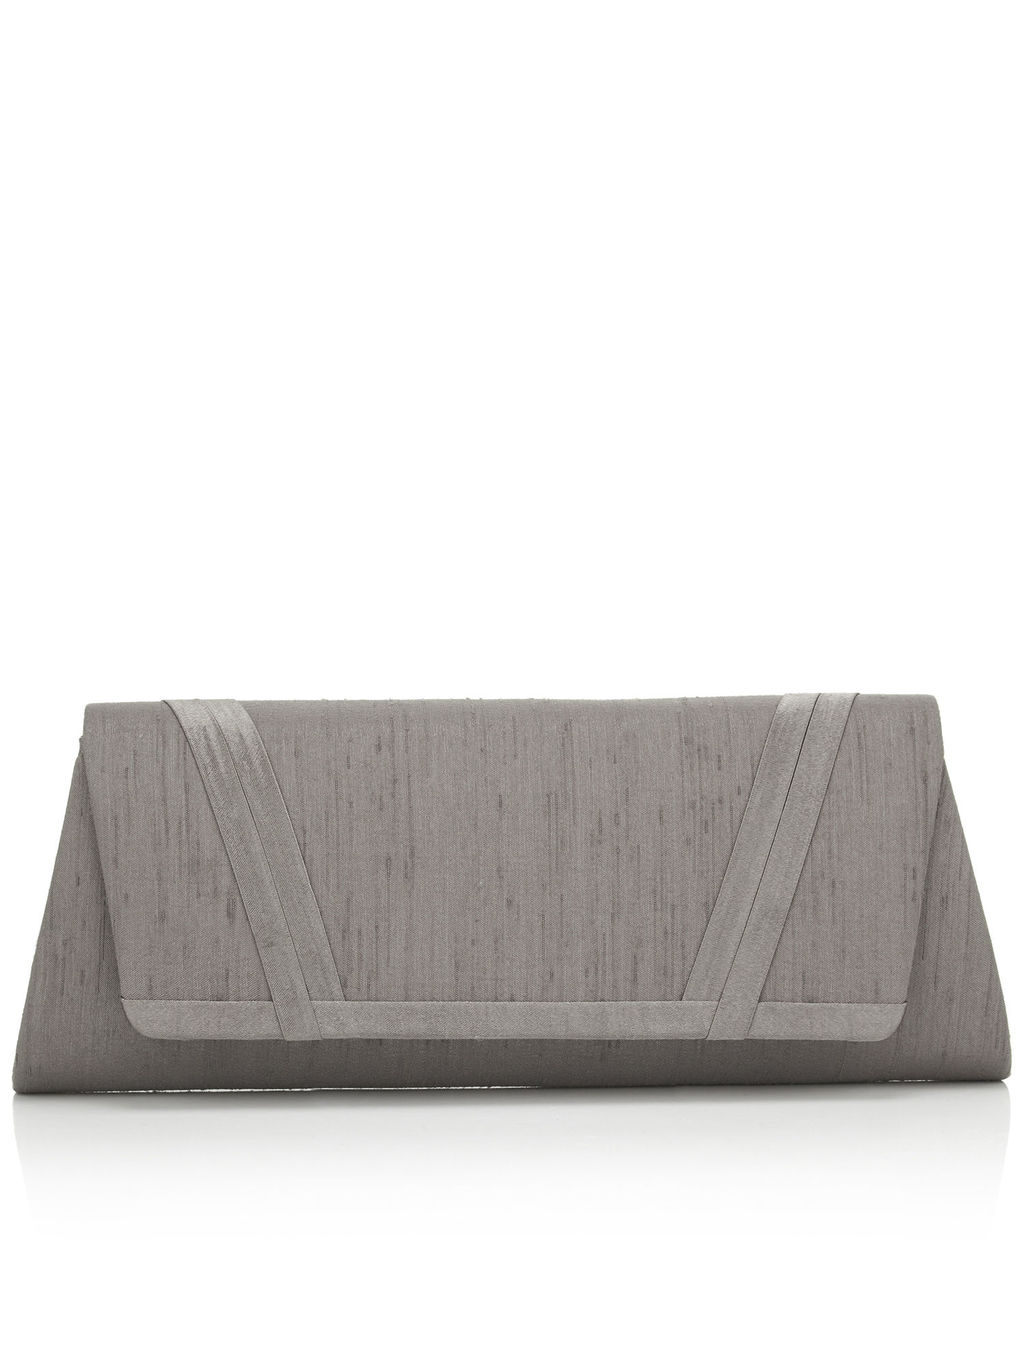 Double Pleat Point Bag - predominant colour: mid grey; occasions: evening, occasion; type of pattern: standard; style: clutch; length: hand carry; size: standard; material: fabric; pattern: plain; finish: plain; season: s/s 2016; wardrobe: event